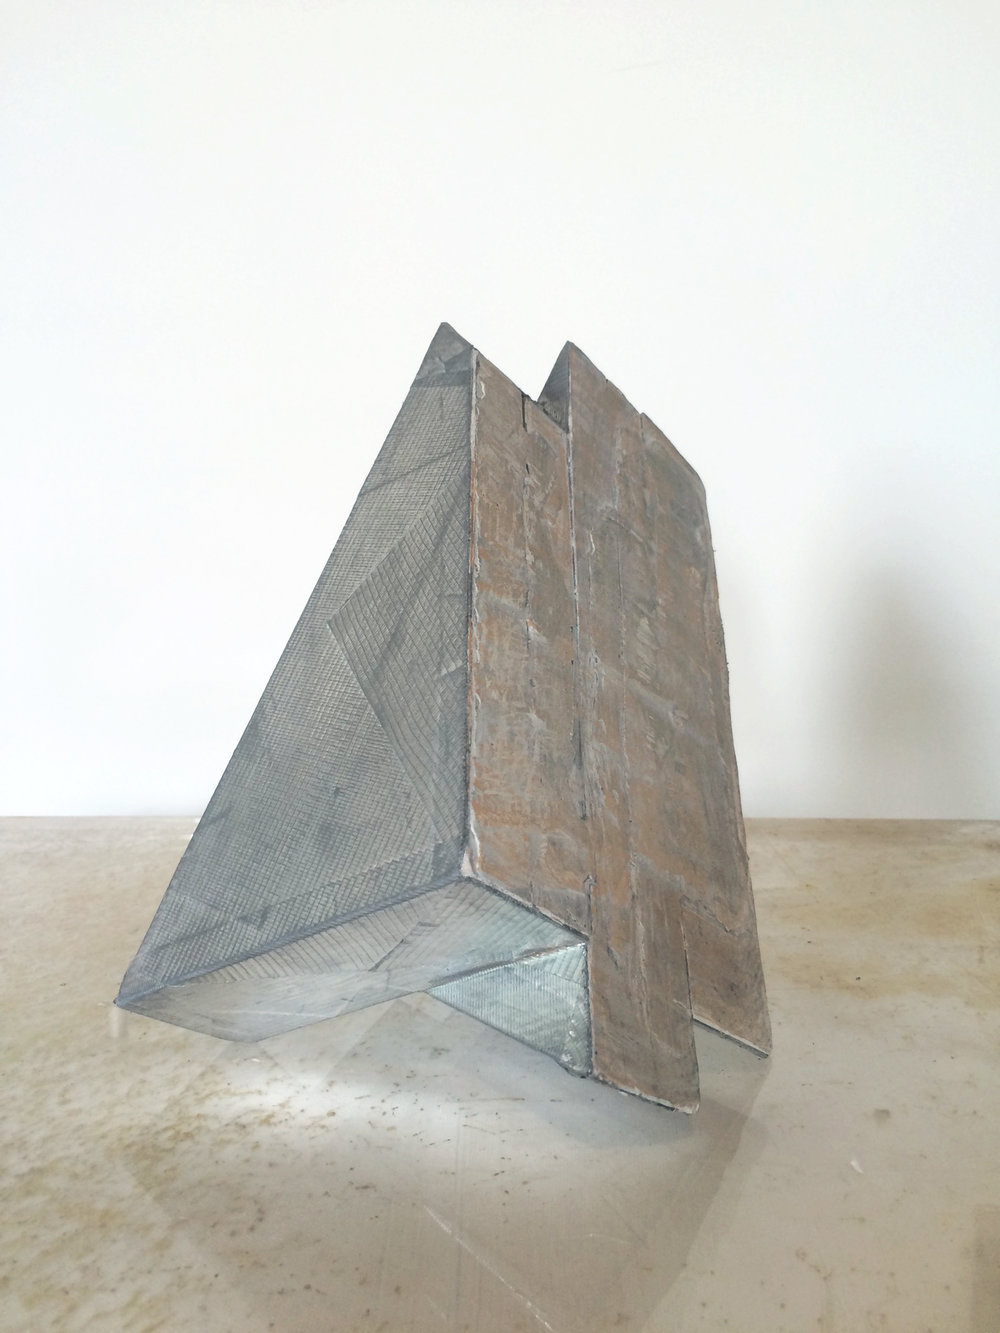 Small prism, 2016  Wood, plaster, duct tape. 12 x 12 x 6